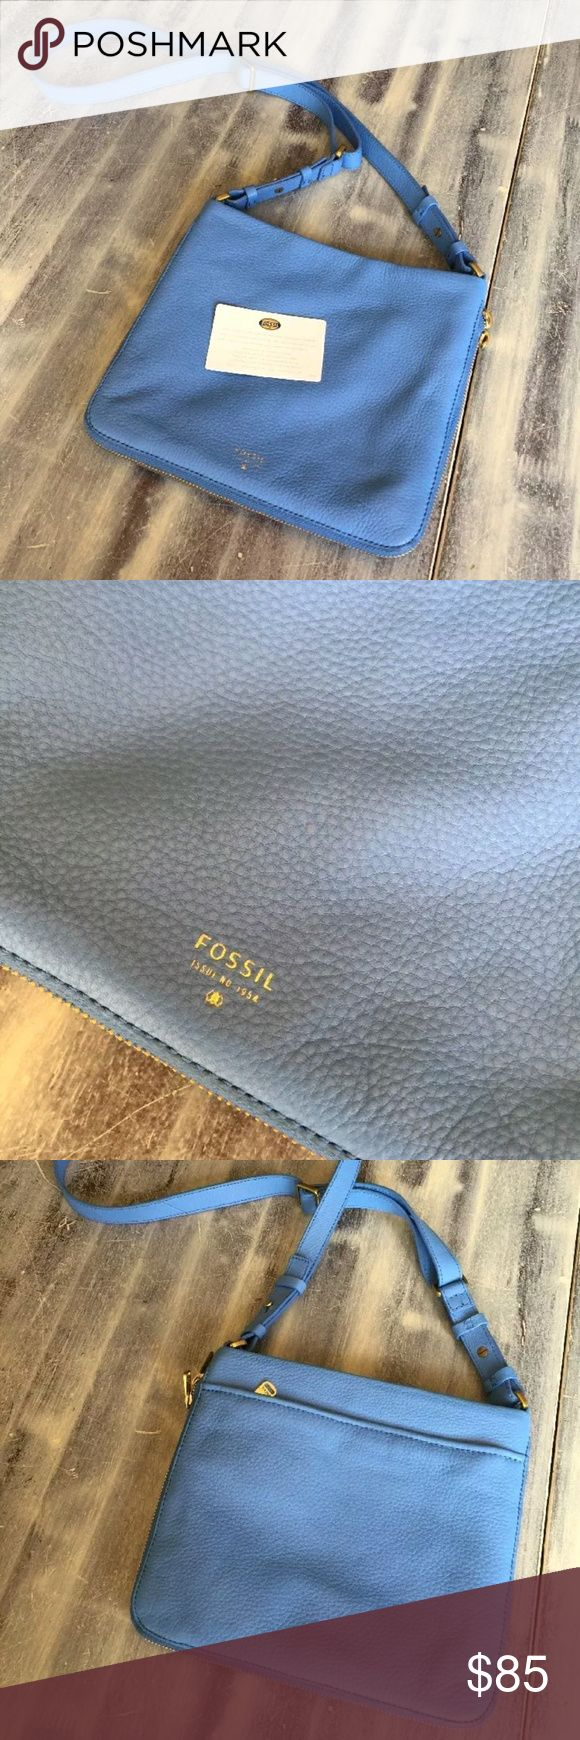 SALEFossil blue Preston Crossbody! Beautiful light blue color livhtly used very good condition this bag is amazing! I just dont use it much but the bag can be mad to be small or opened up to be larger with the zip detail at the bottom! :) little small scuff on the corners but not bad at all :) Fossil Bags Crossbody Bags